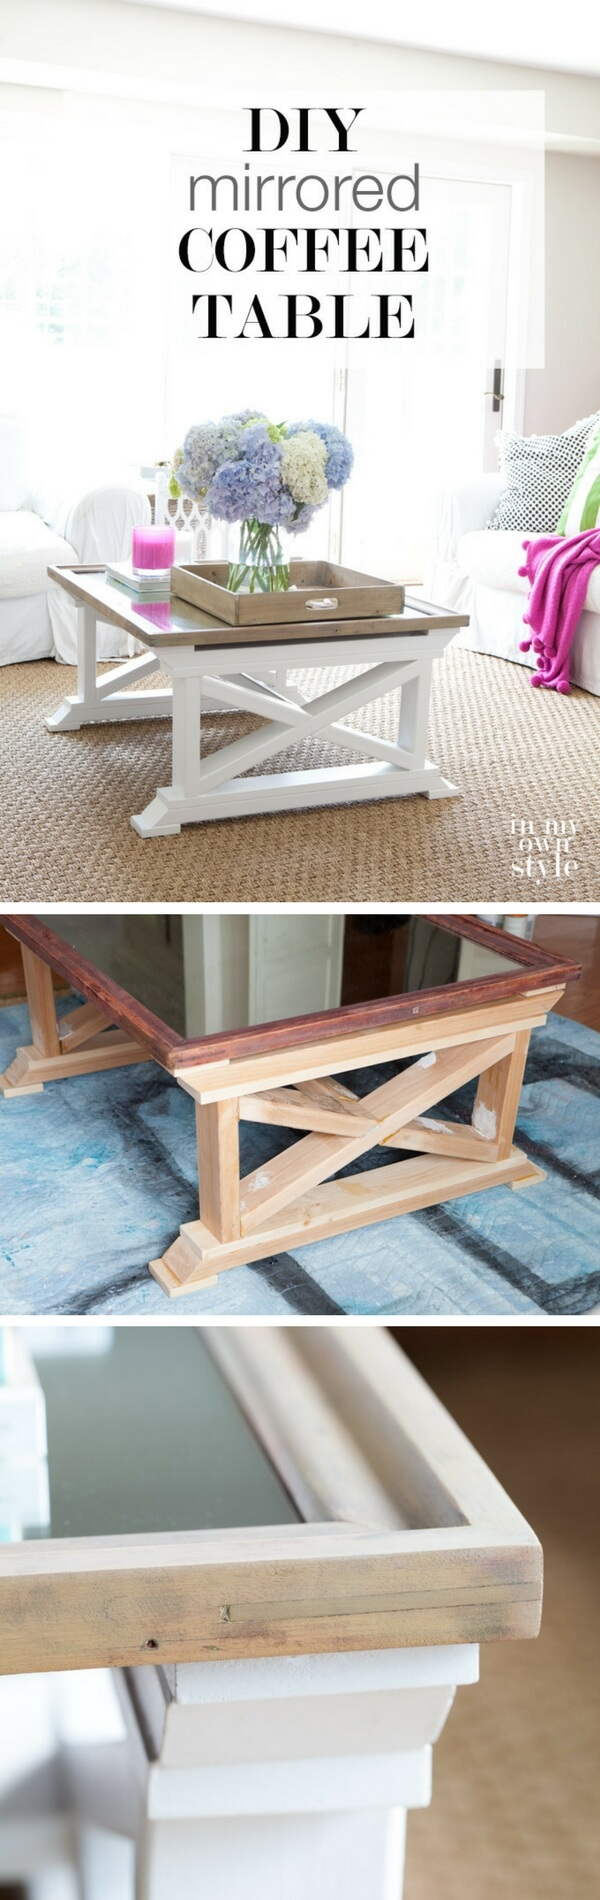 diy living room furniture. 20. Farmhouse Meets Mod Mirrored Table Diy Living Room Furniture E